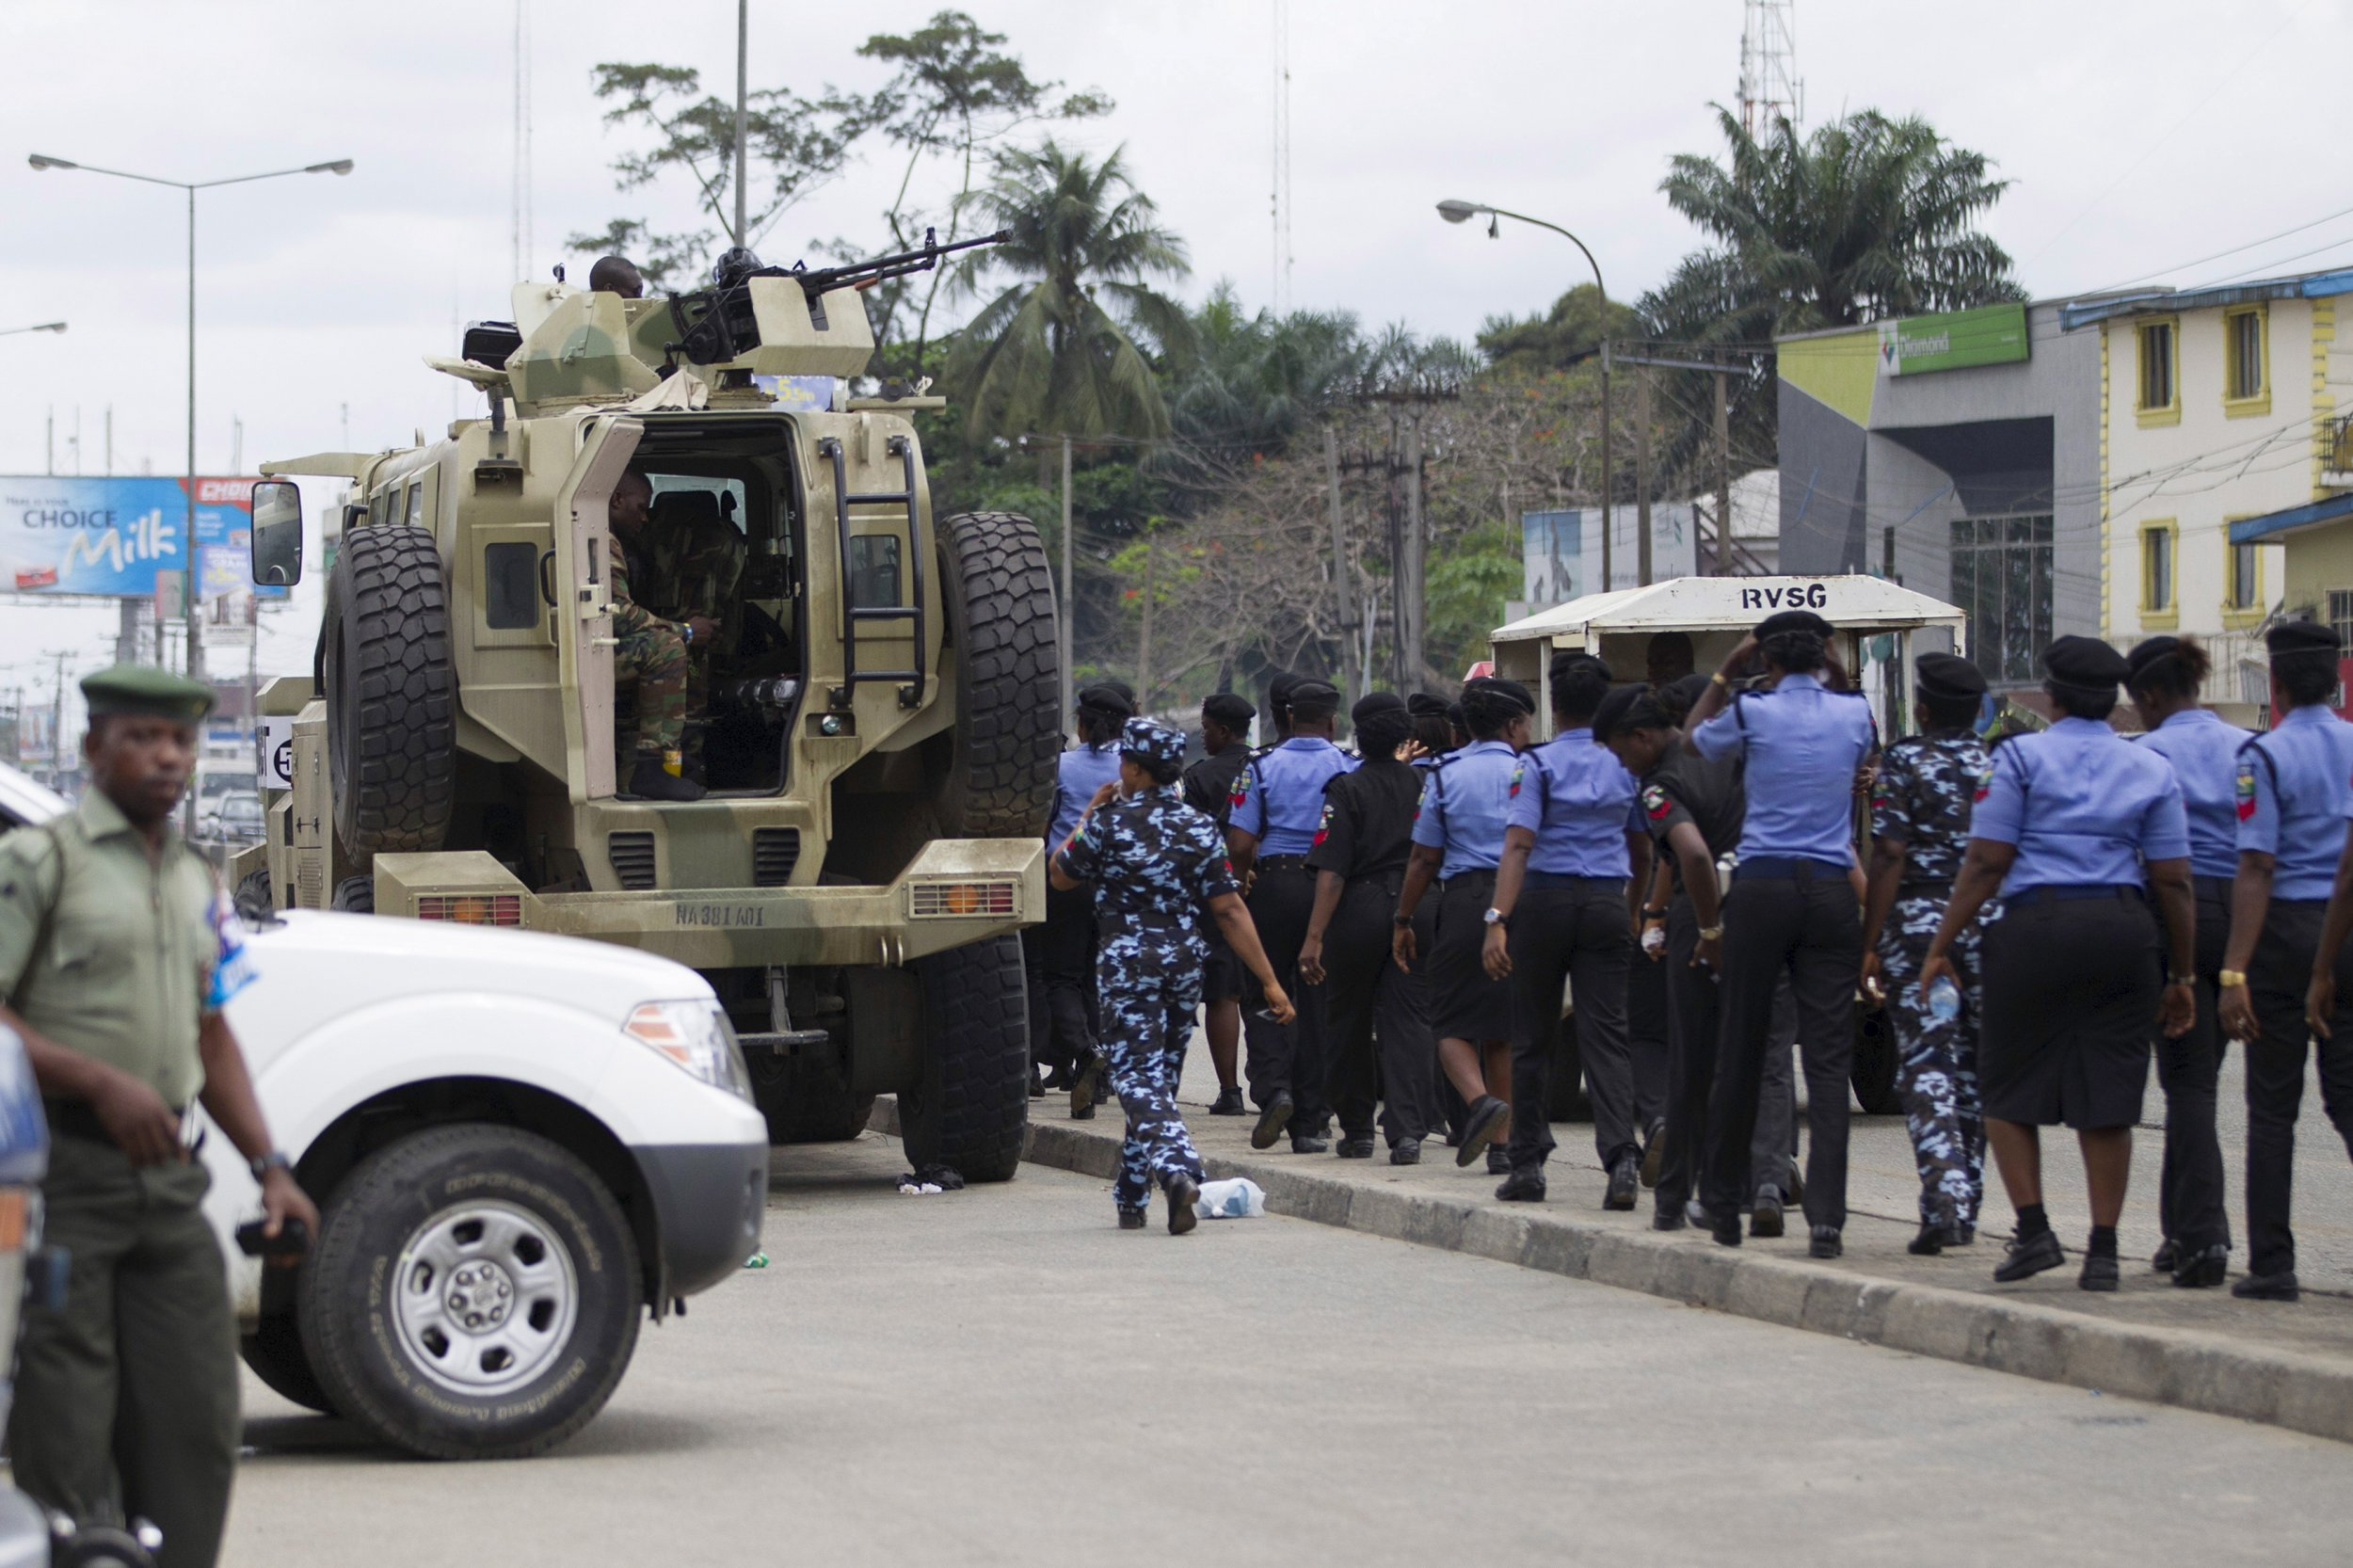 Policewoman march in Rivers state following Nigeria's general election.